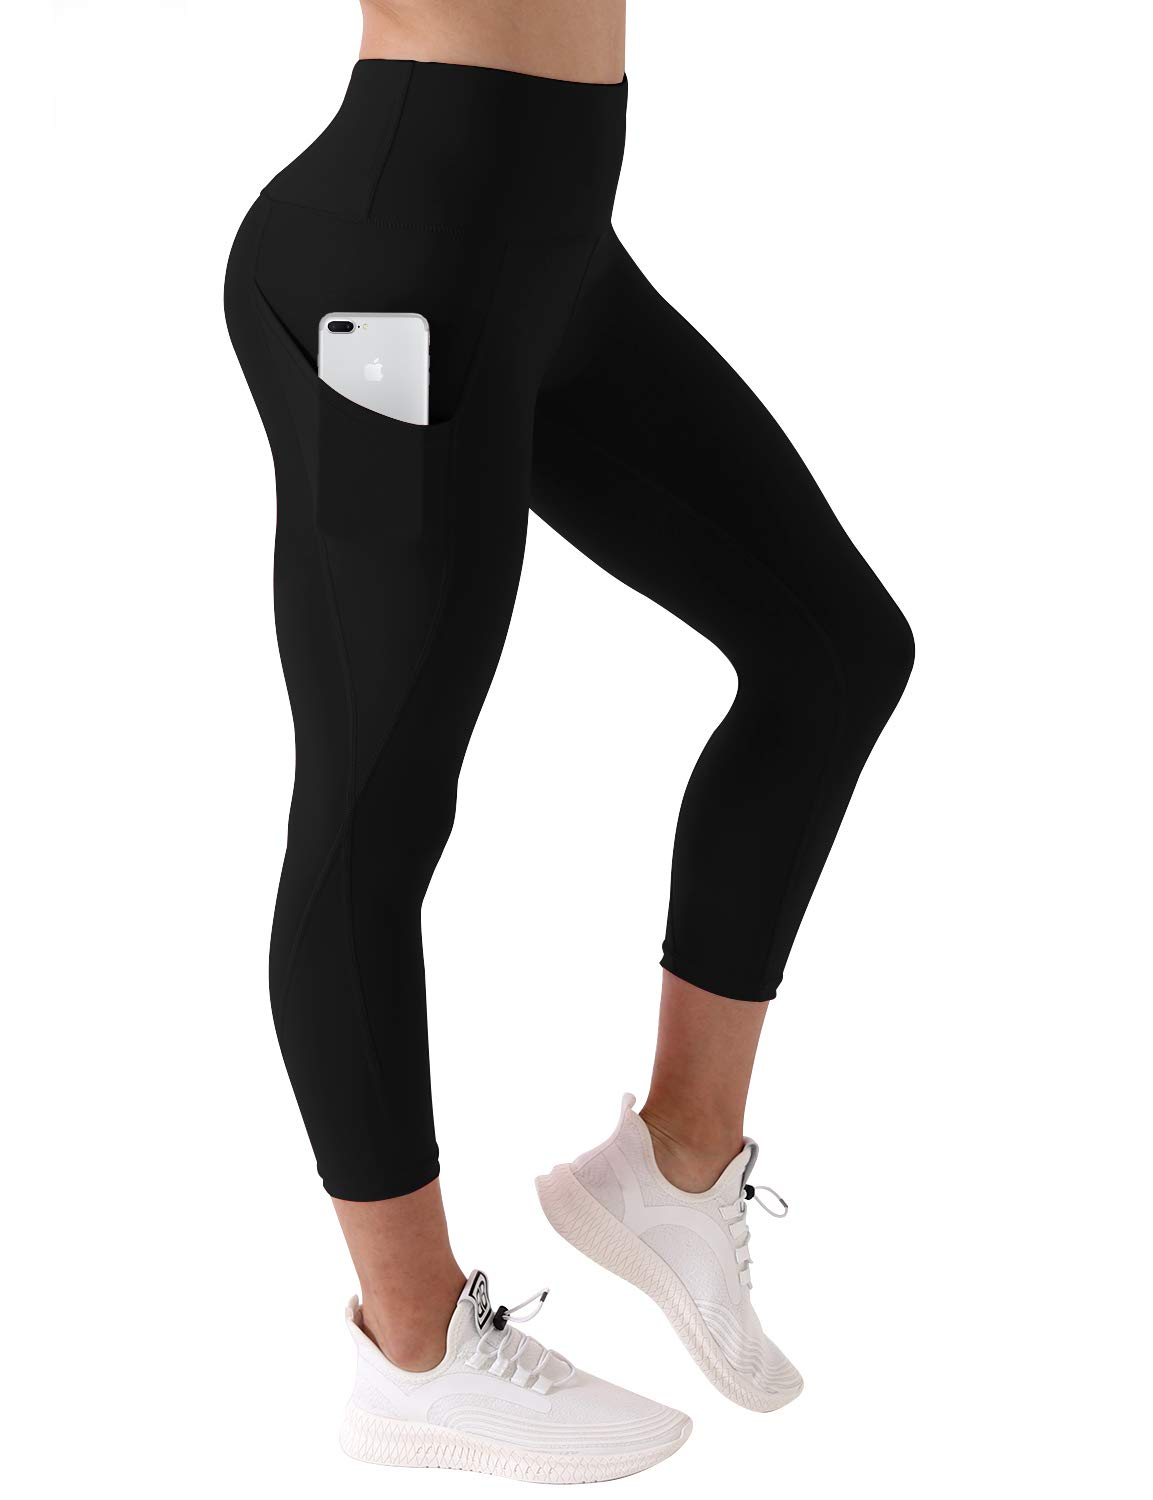 BUBBLELIME High Compression Yoga Pants Out Pocket Running Pants High Waist UPF30+, Bwsb010 Black(1), Small(22'' inseam)